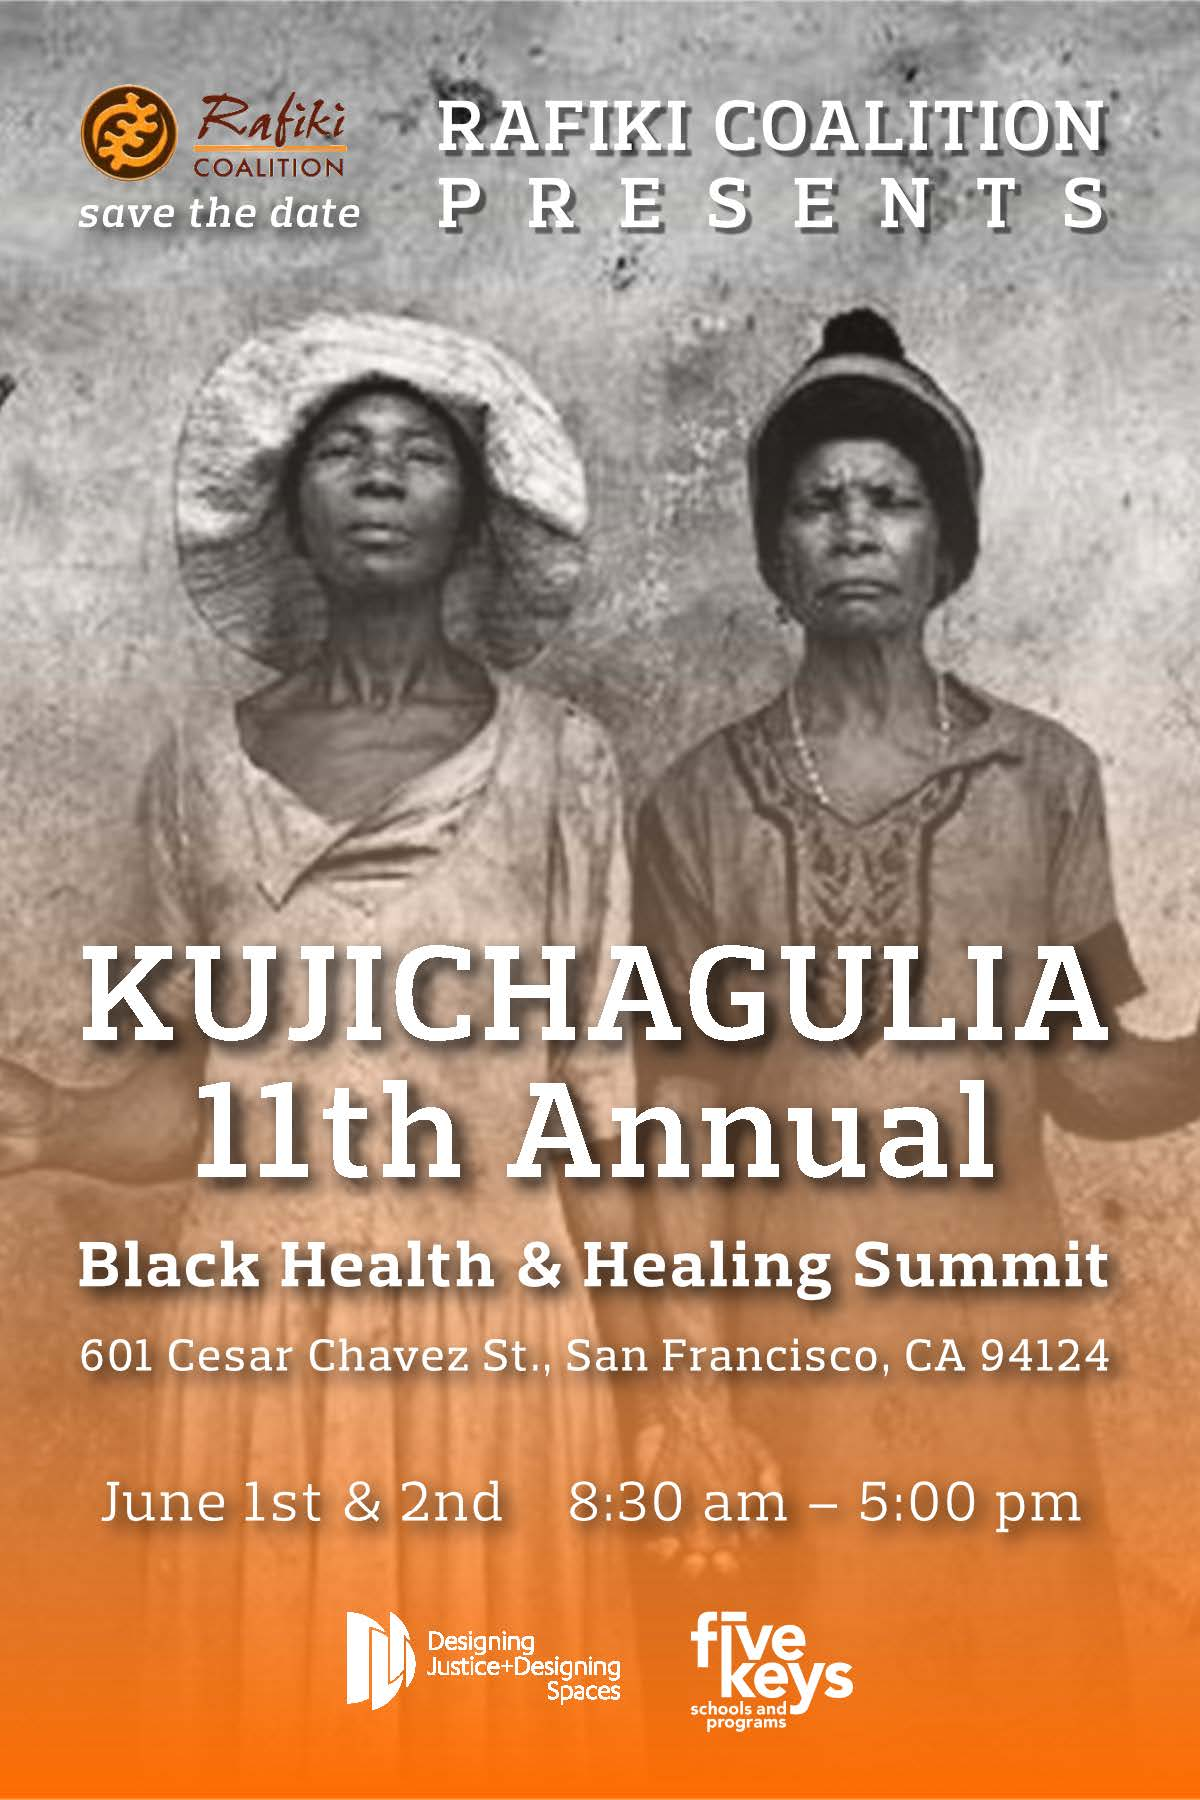 Rafiki Coalition Health & Healing Summit 2018